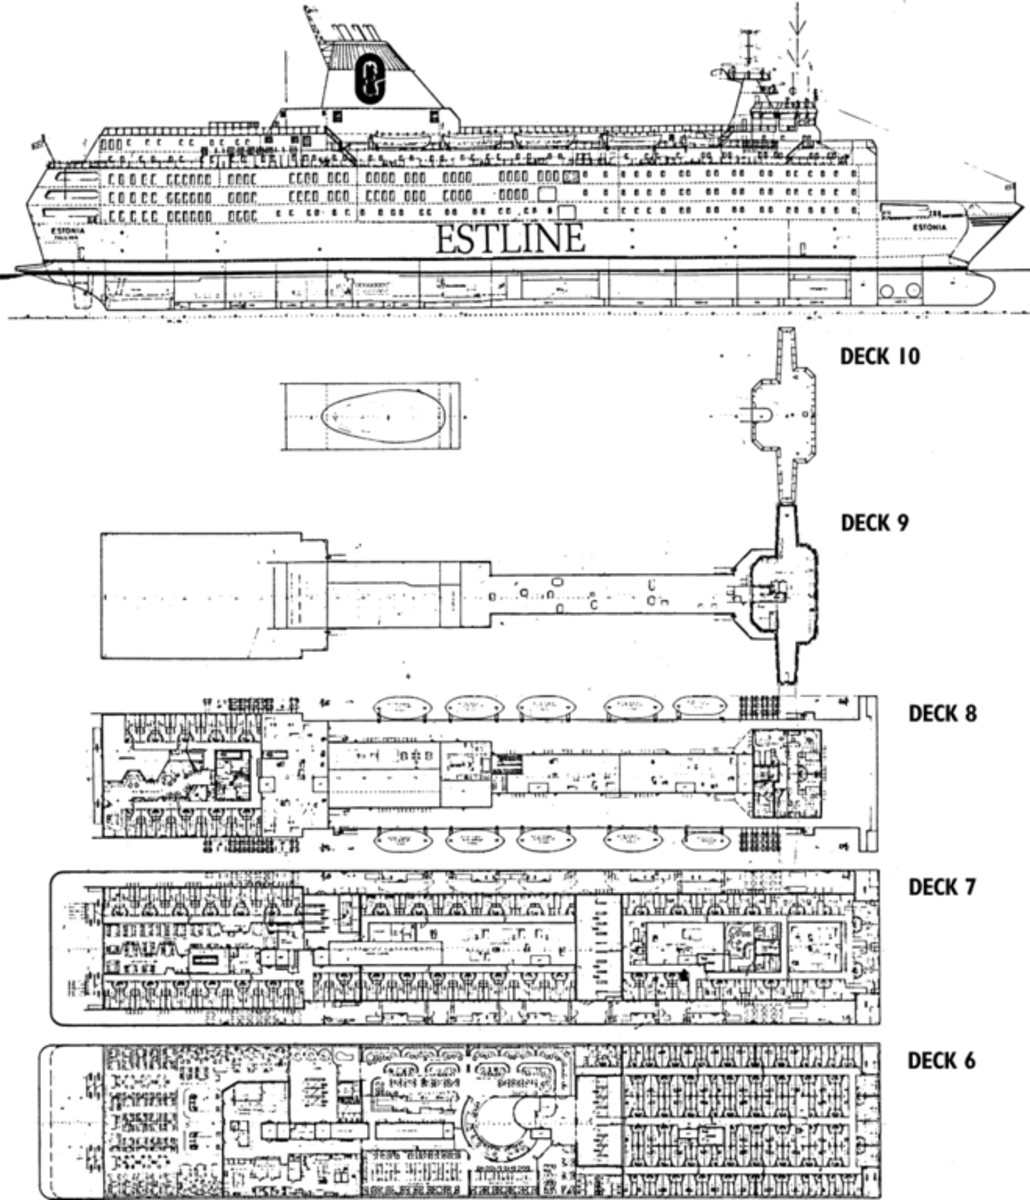 Diagram of the MS Estonia showing her top five decks